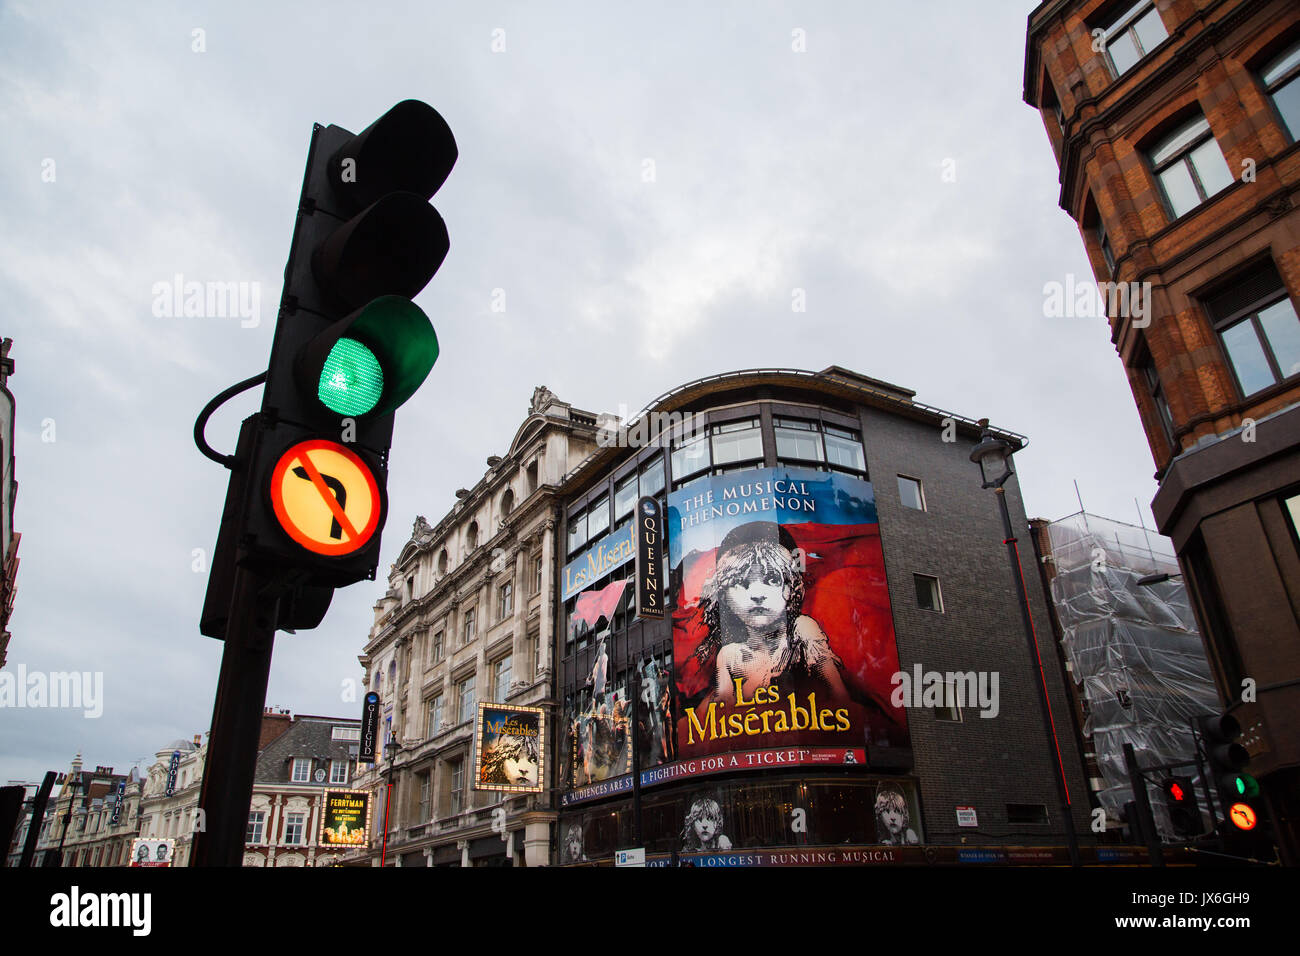 Les Miserables Display on show at The Queens Theatre, Shaftesbury Avenue, London UK with Traffic Light at Green in Landscape Orientation. - Stock Image